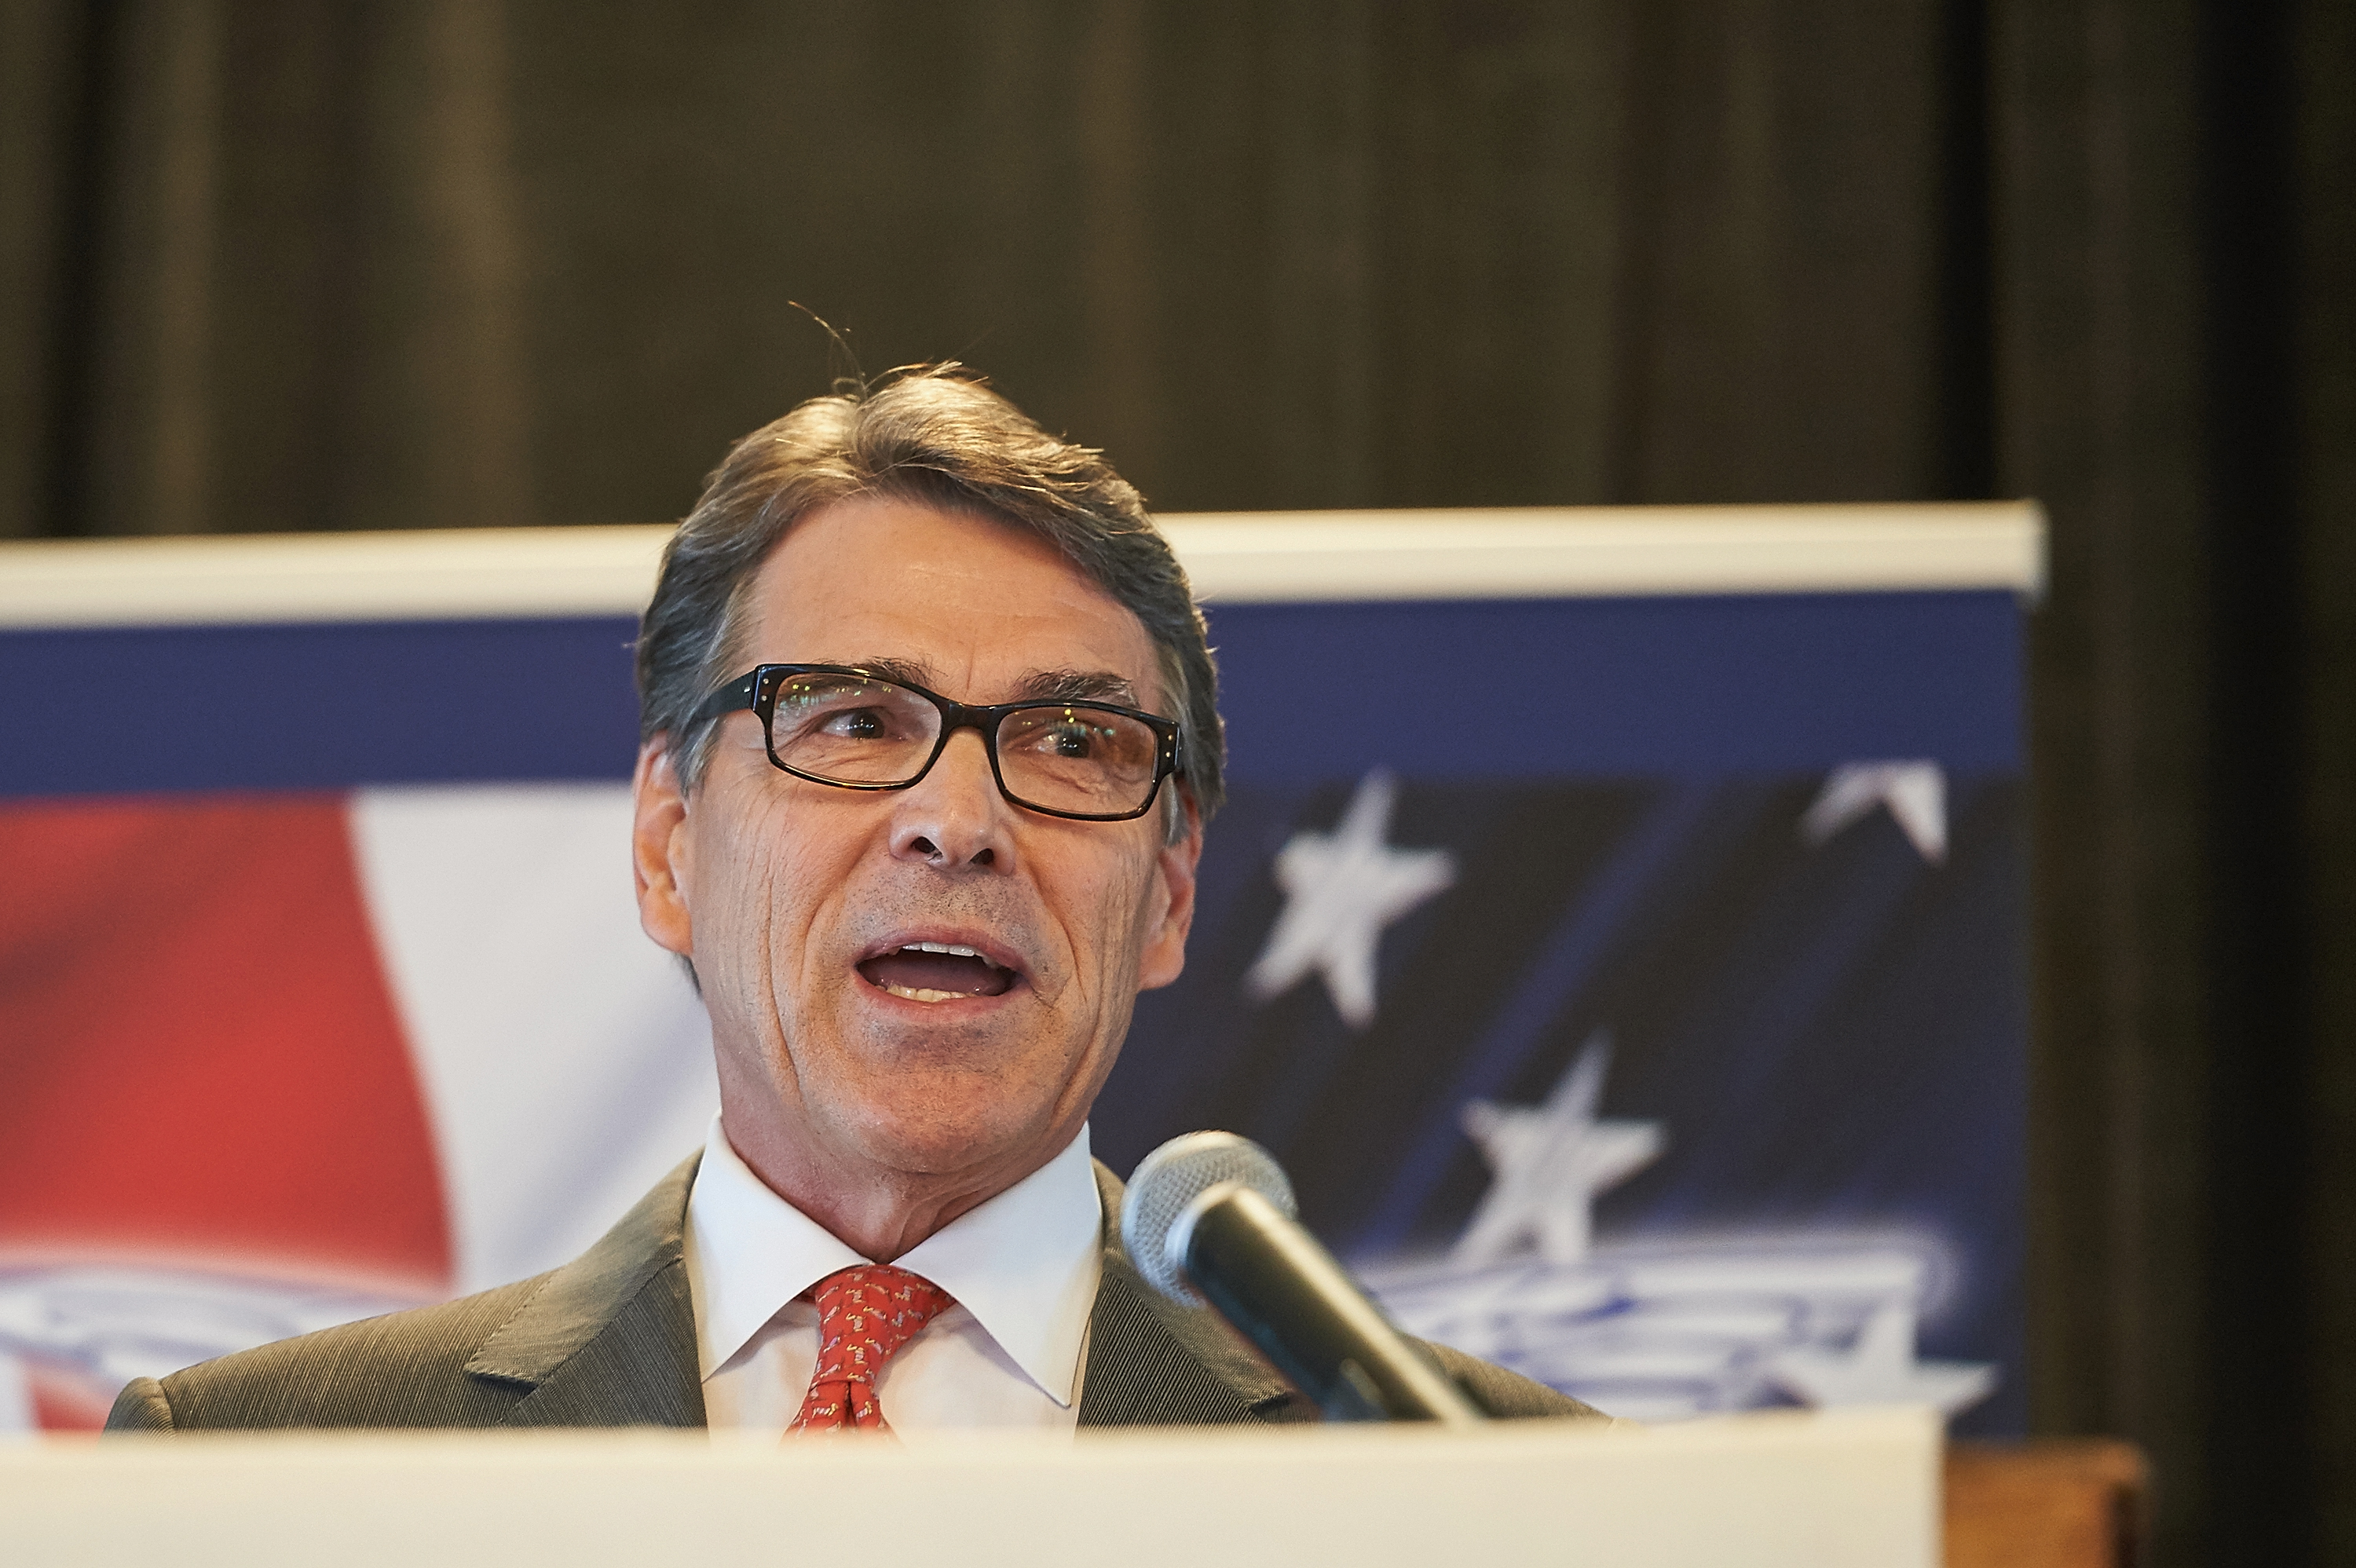 Rick Perry Drops Out Of Presidential Race At Candidate Forum In St. Louis